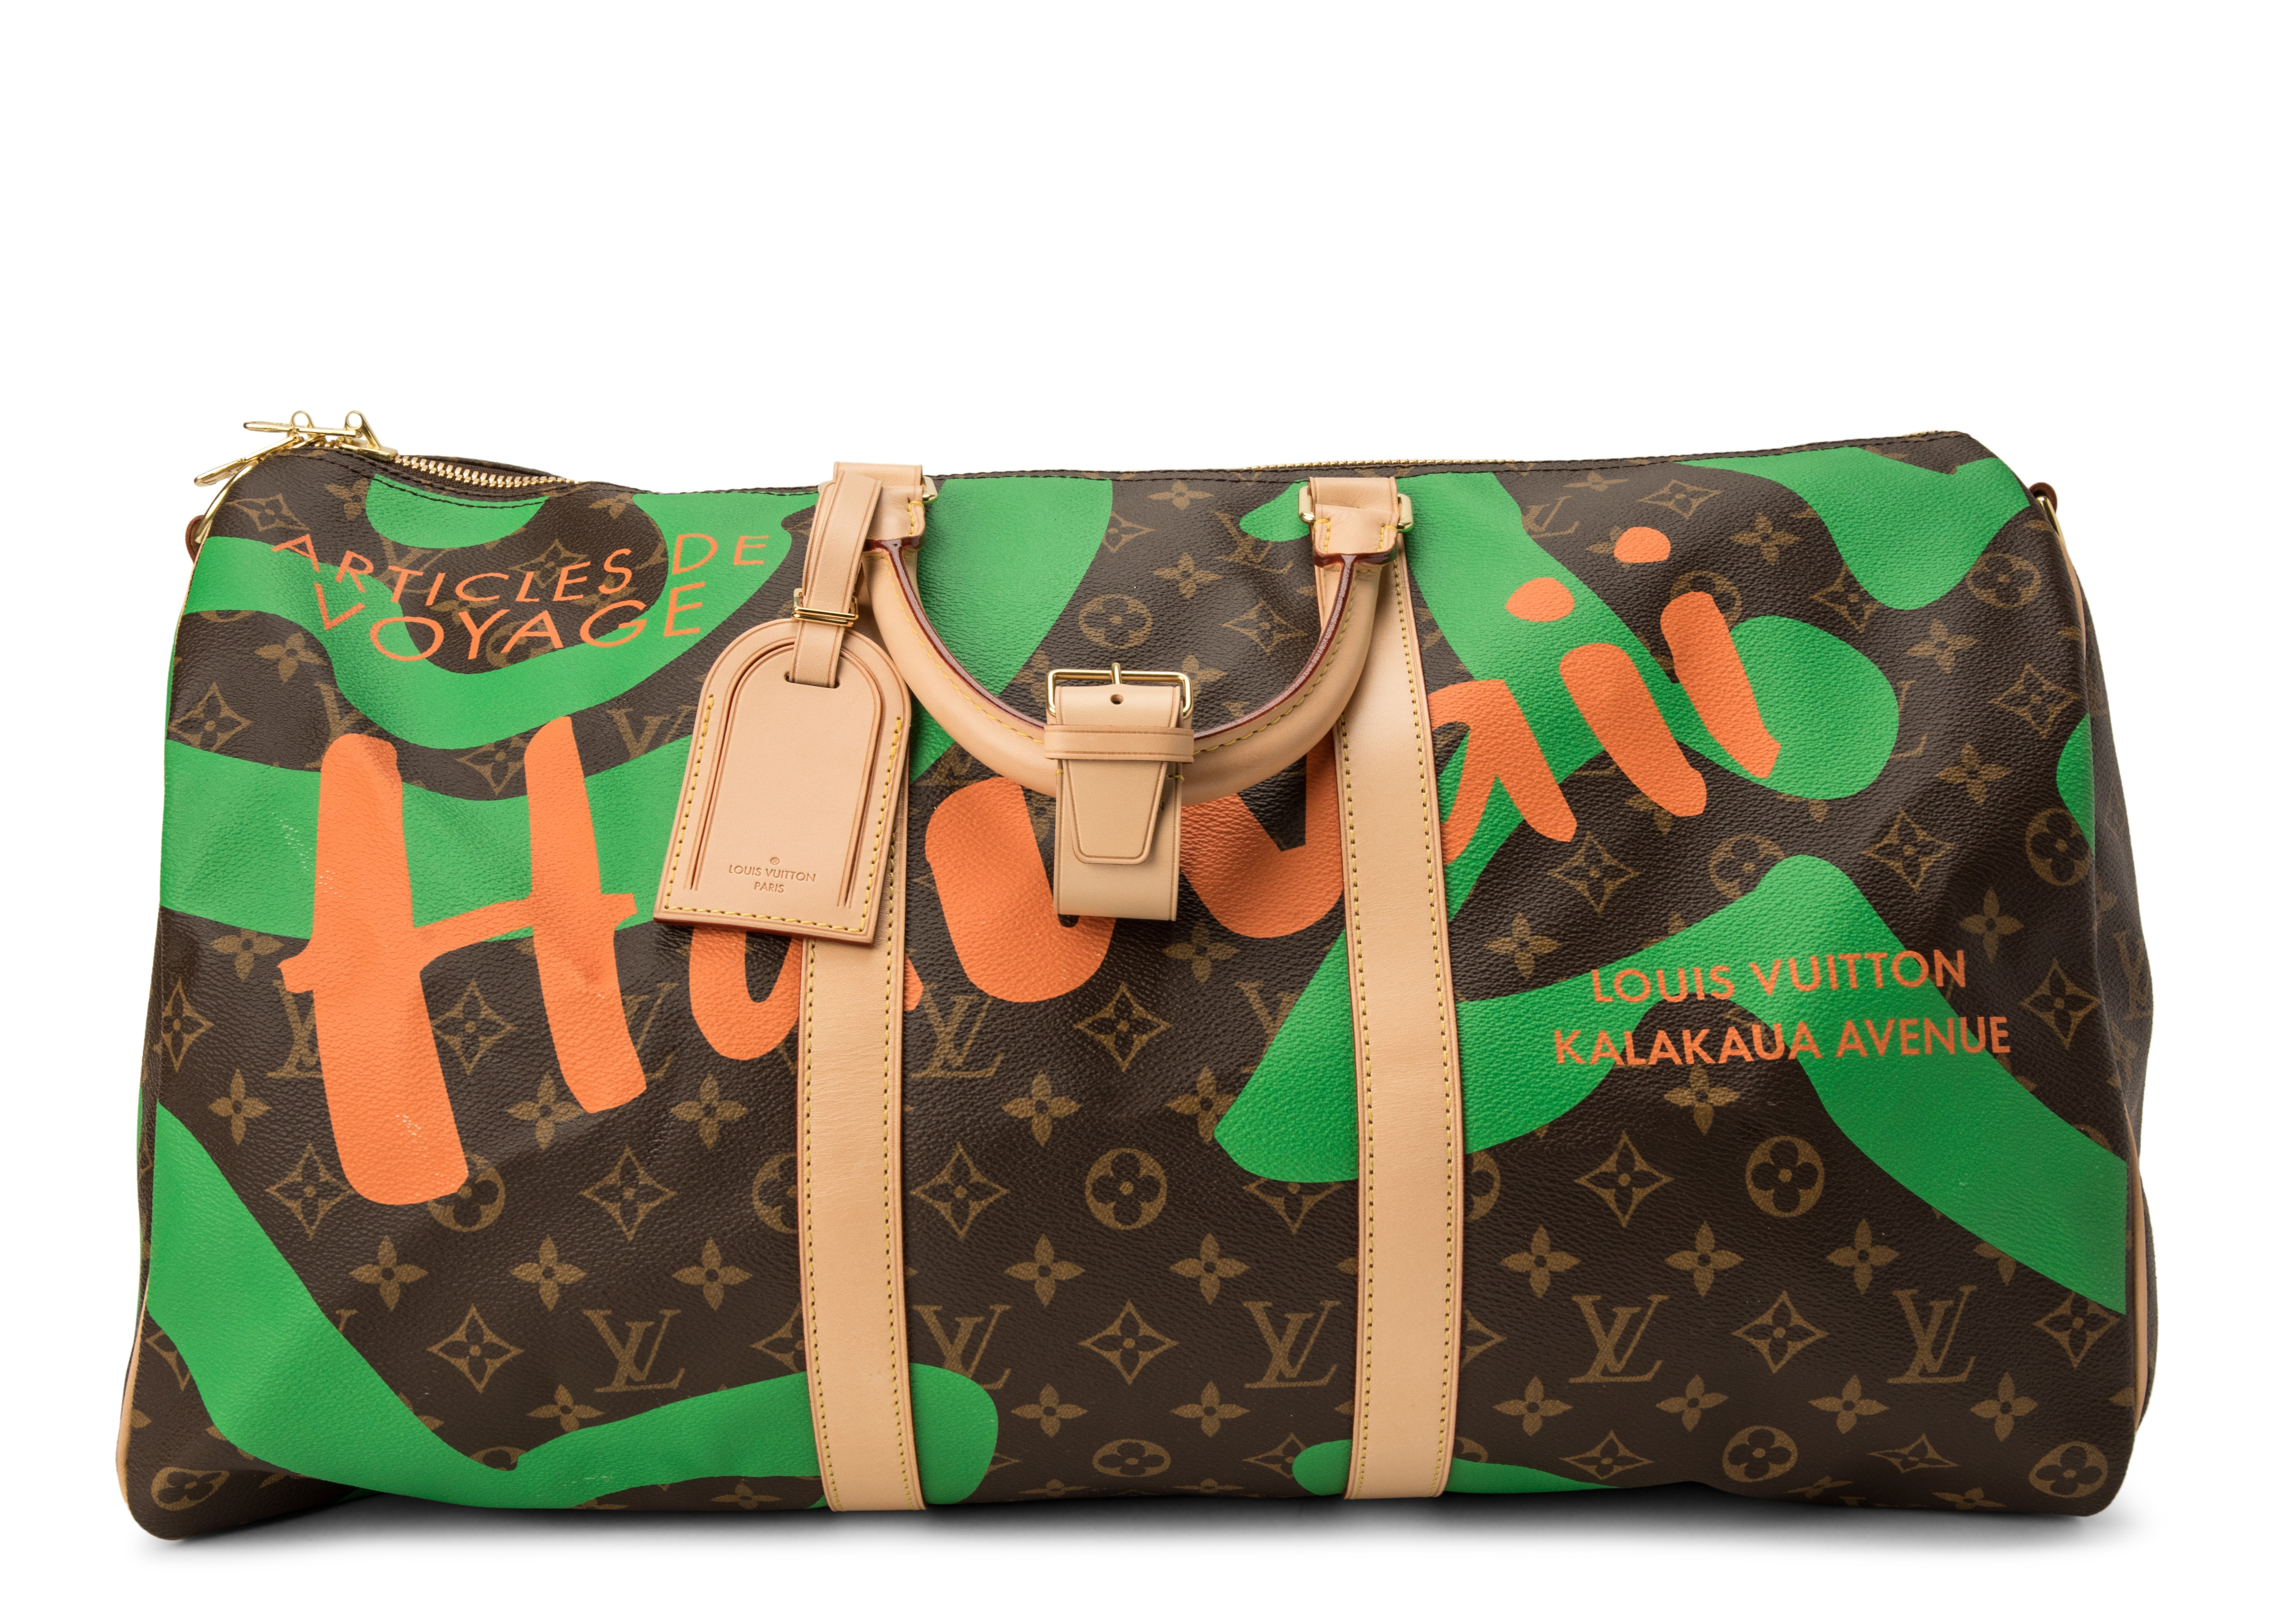 Louis Vuitton Keepall Bandouliere Tahitienne Hawaii Monogram 50 Brown/Green